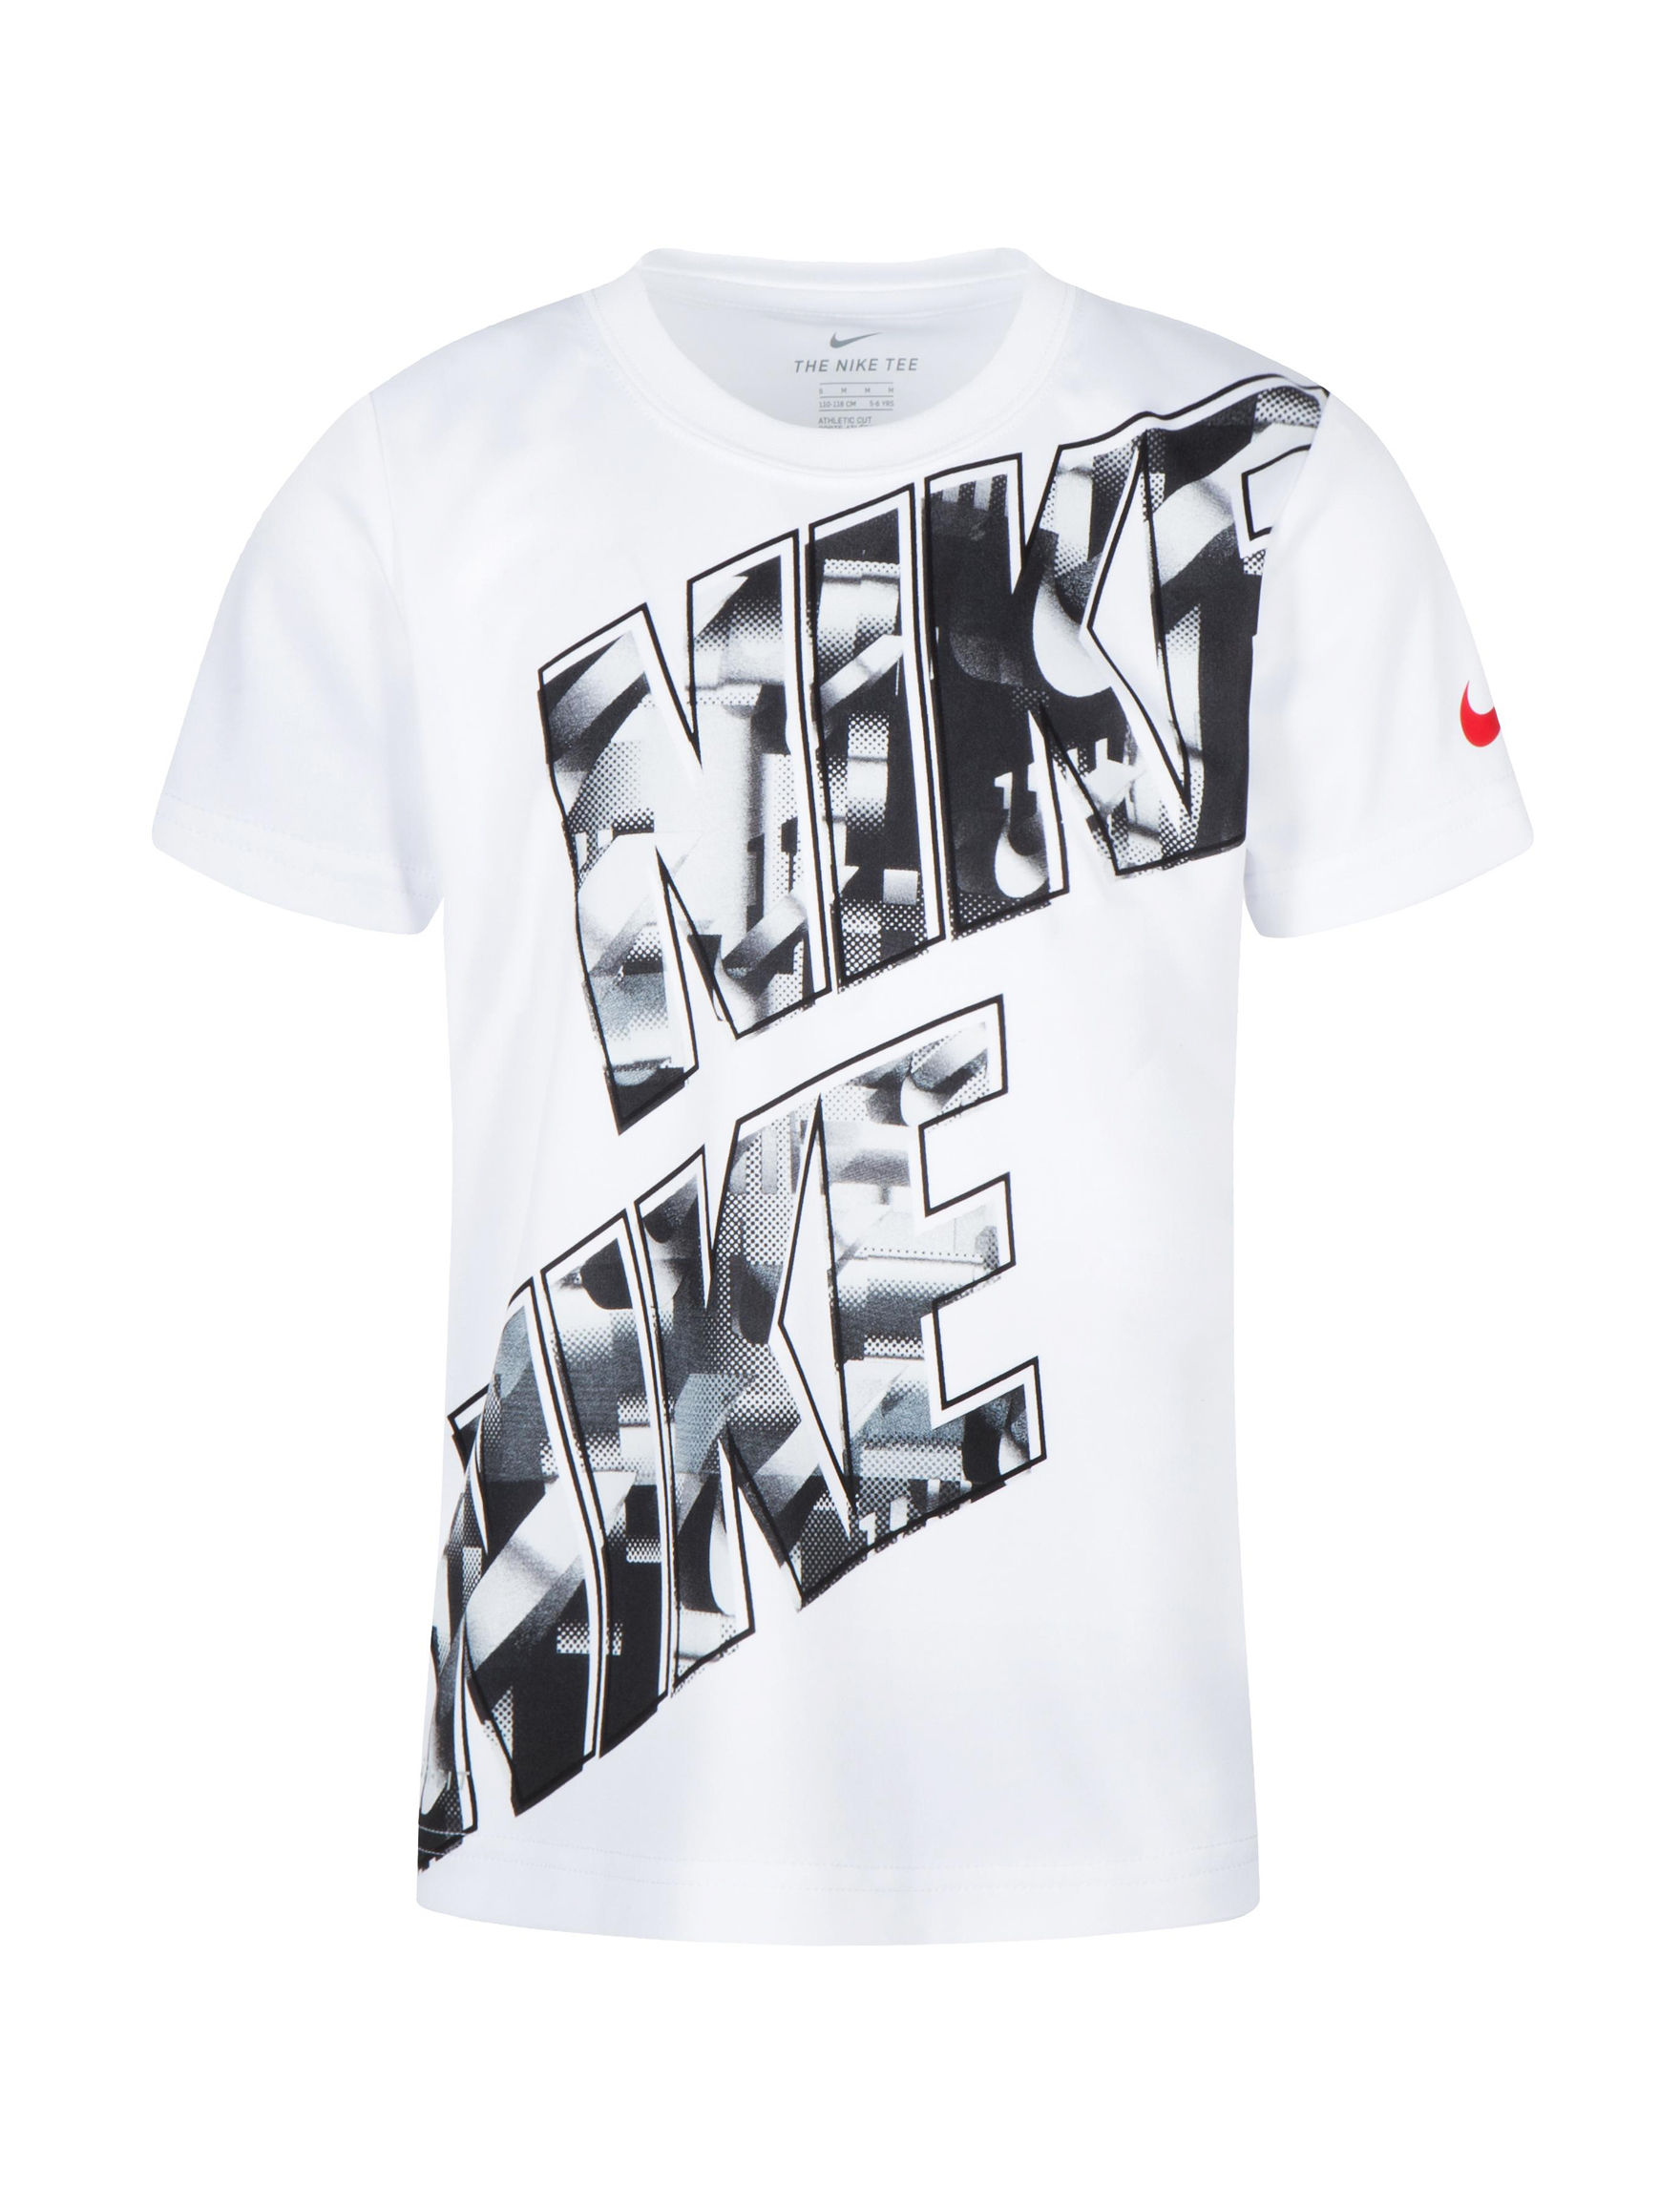 a615a647a Nike Dri-FIT Muddy Logo Block Graphic T-shirt - Toddlers & Boys 5-7 ...